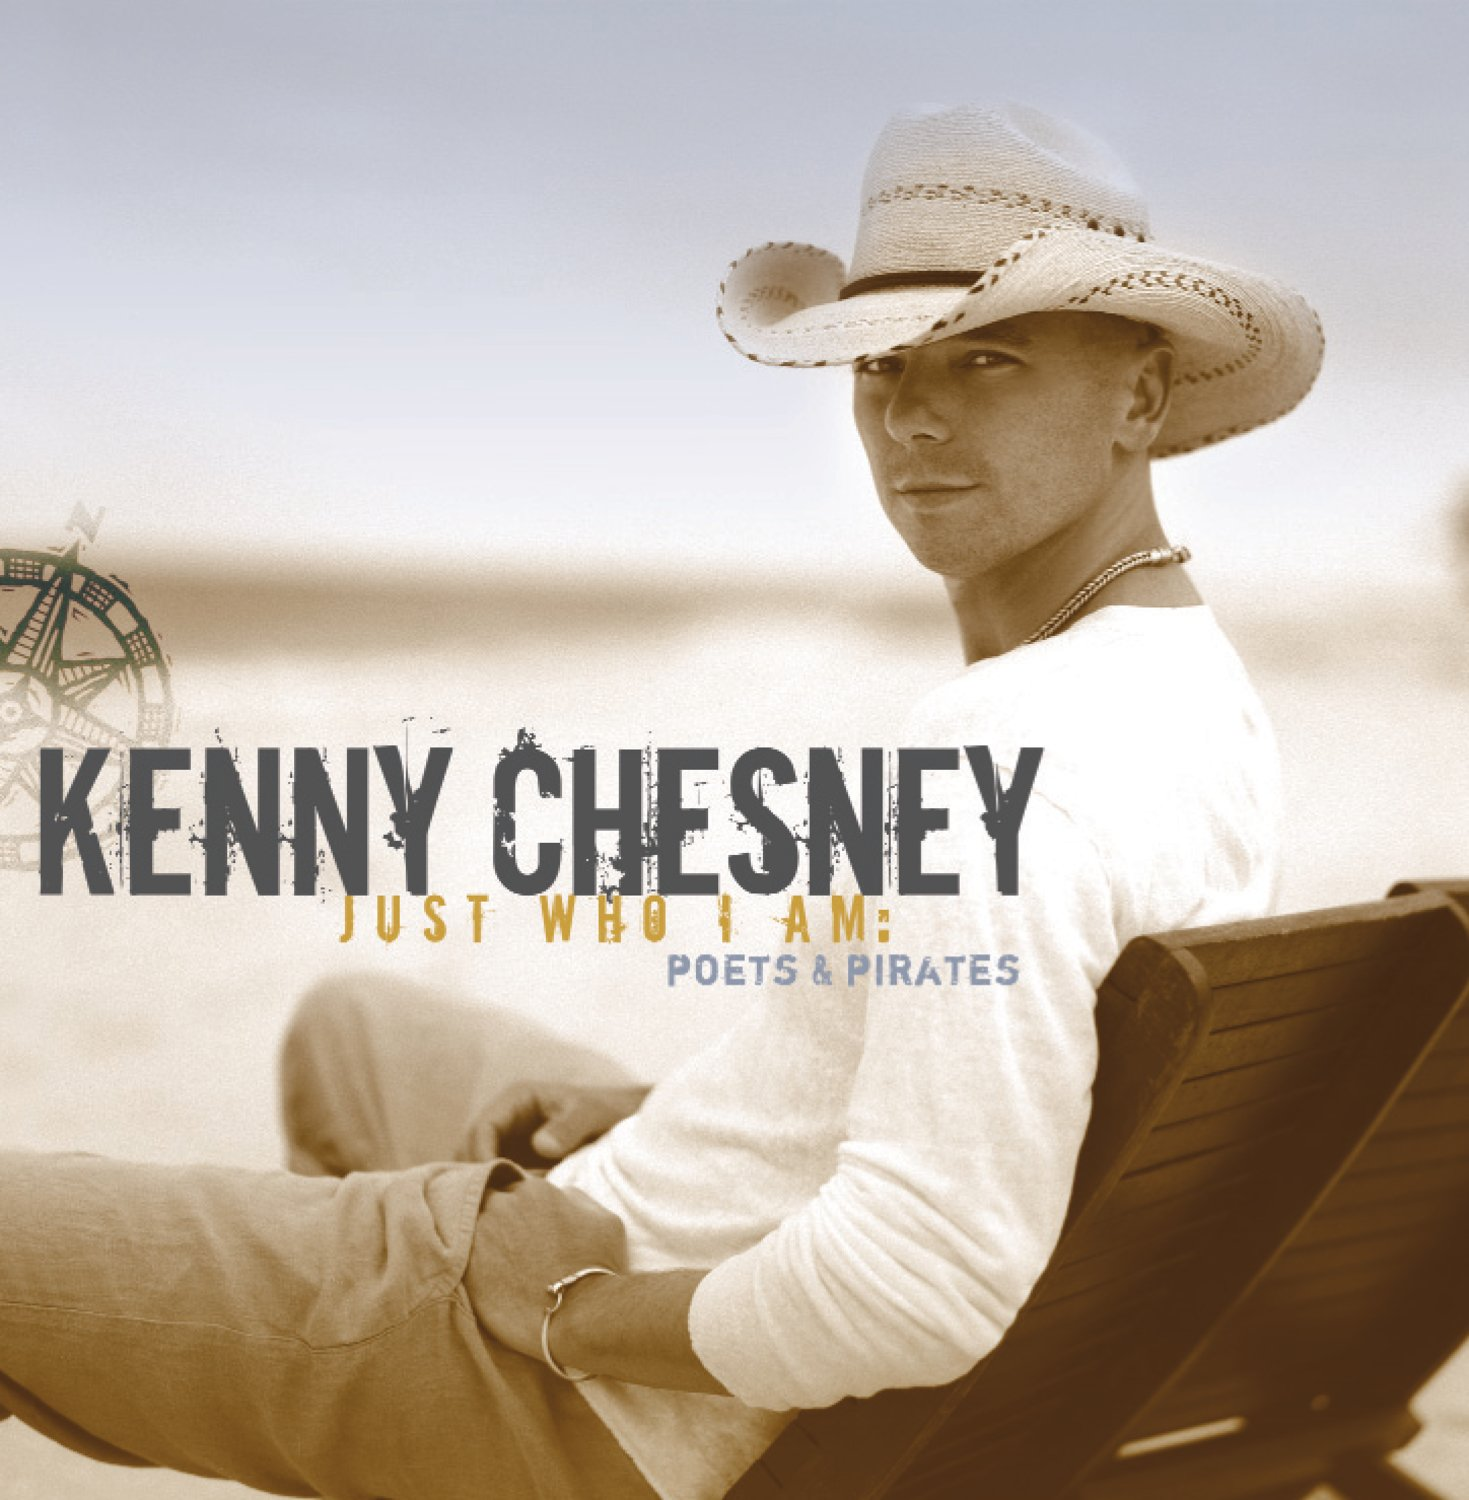 Kenny Chesney - Just Who I Am: Poets & Pirates - Amazon.com Music